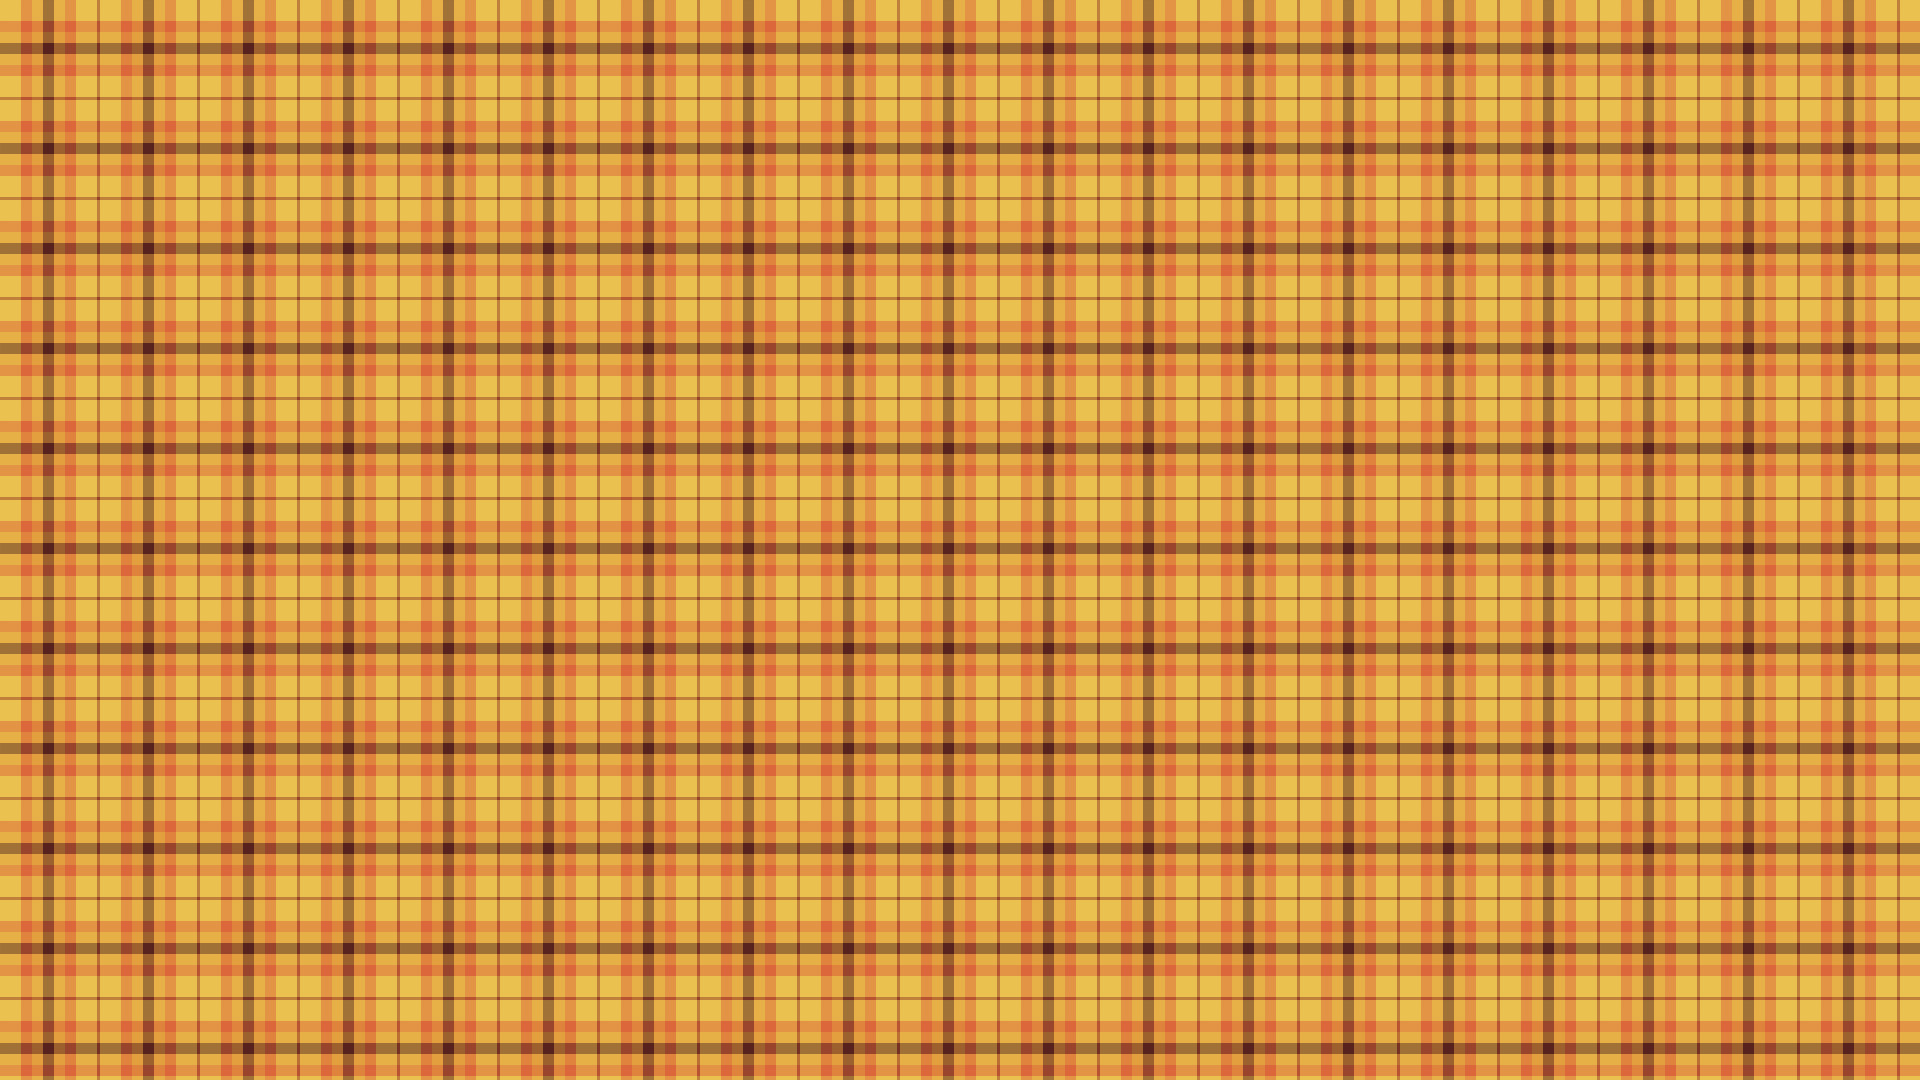 Christmas Plaid Patterns For Photoshop By Cybercat